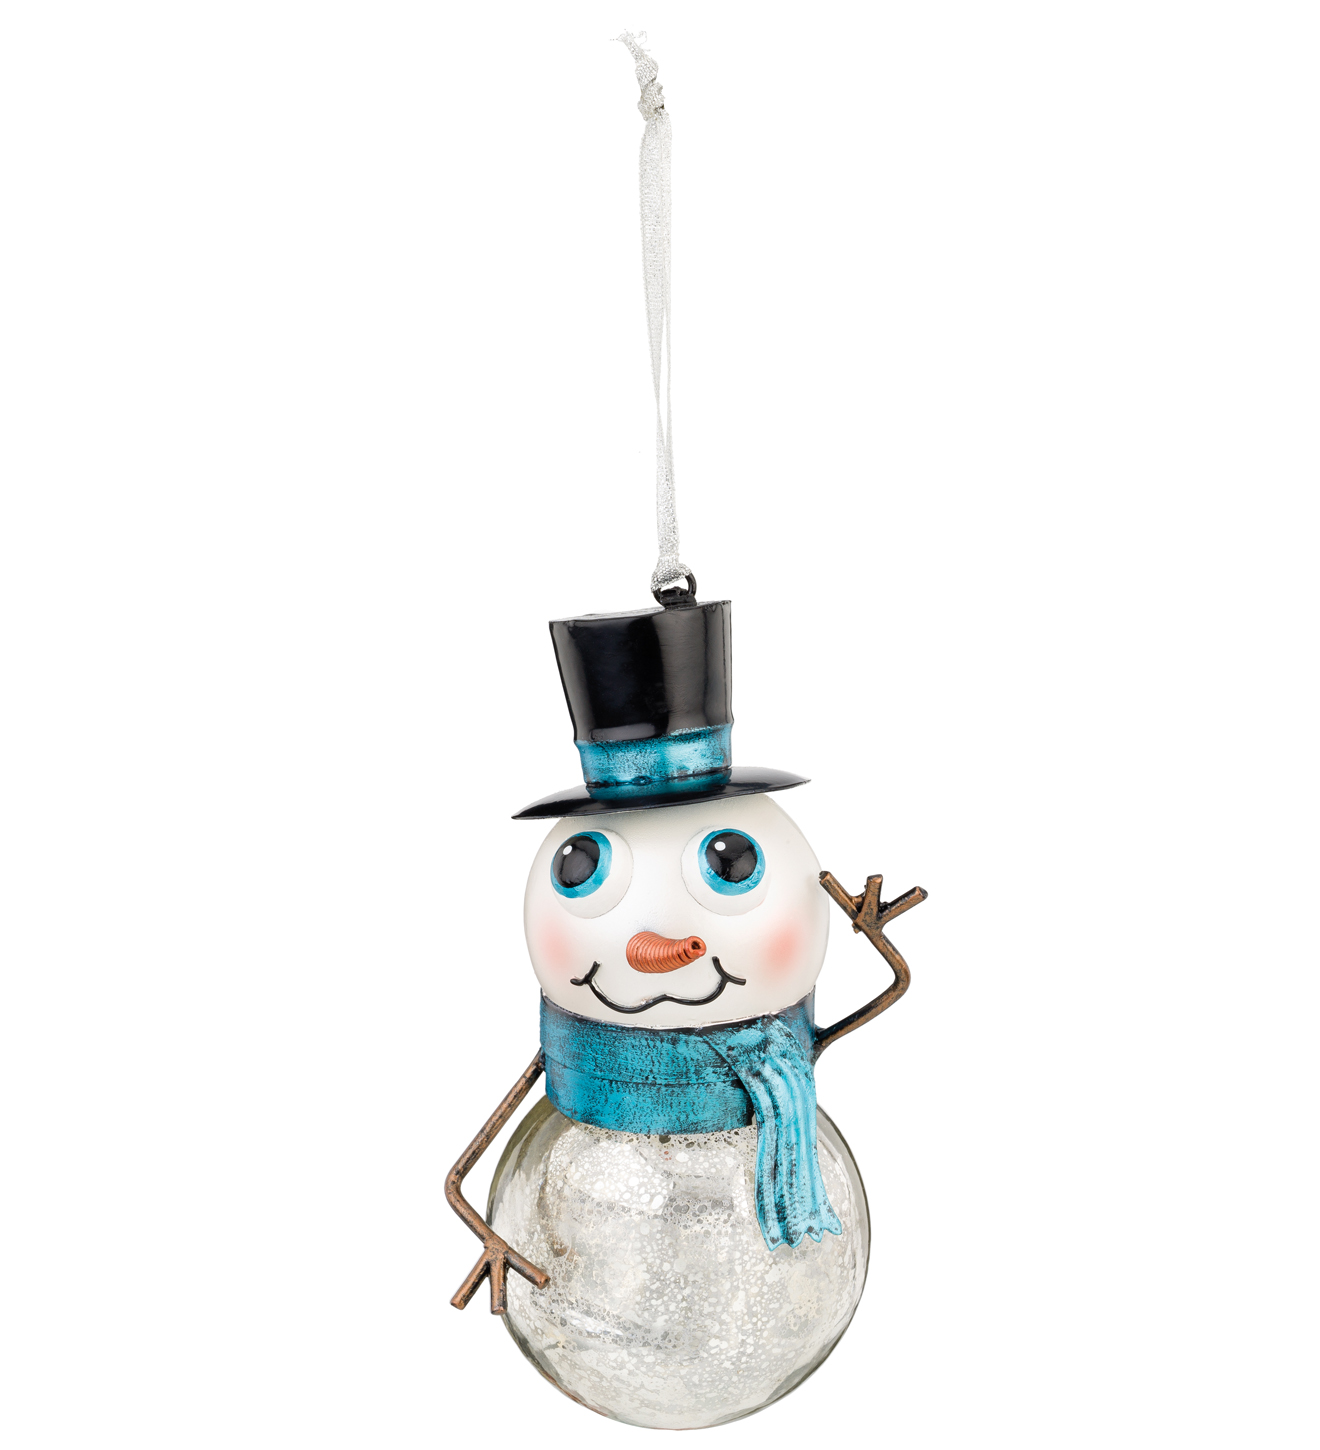 Mercury Ornament - Snowman